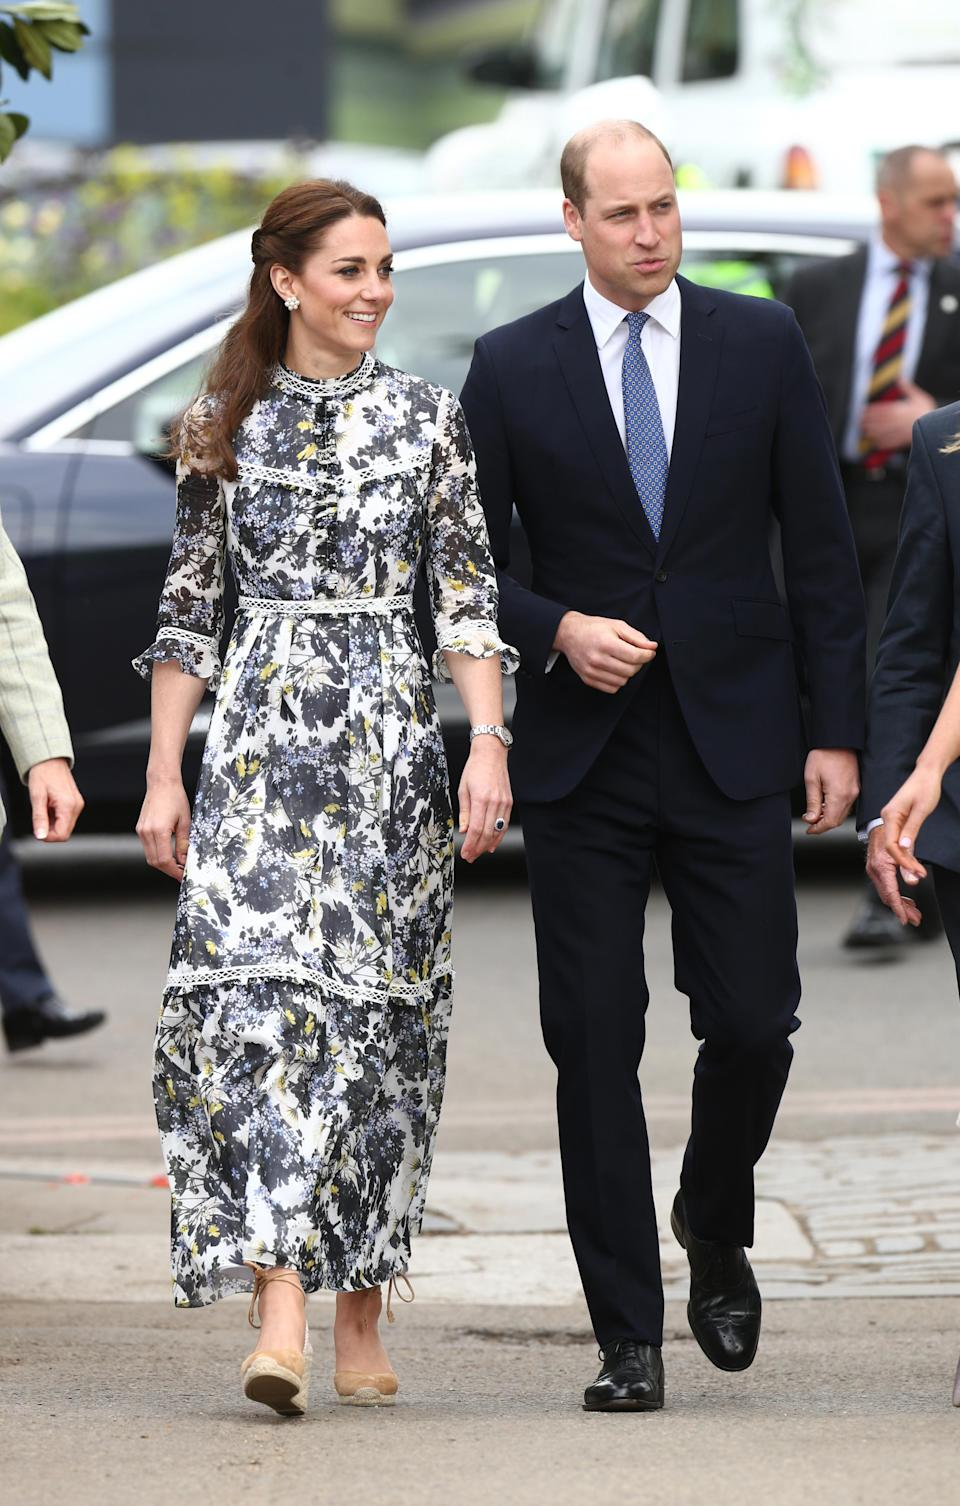 For the Chelsea Flower Show preview, the duchess donned a floral Erdem 'Shebah' maxi dress with her Castaner 'Carina' espadrille wedges and her Cassandra Goad pearl stud earrings. [Photo: PA]